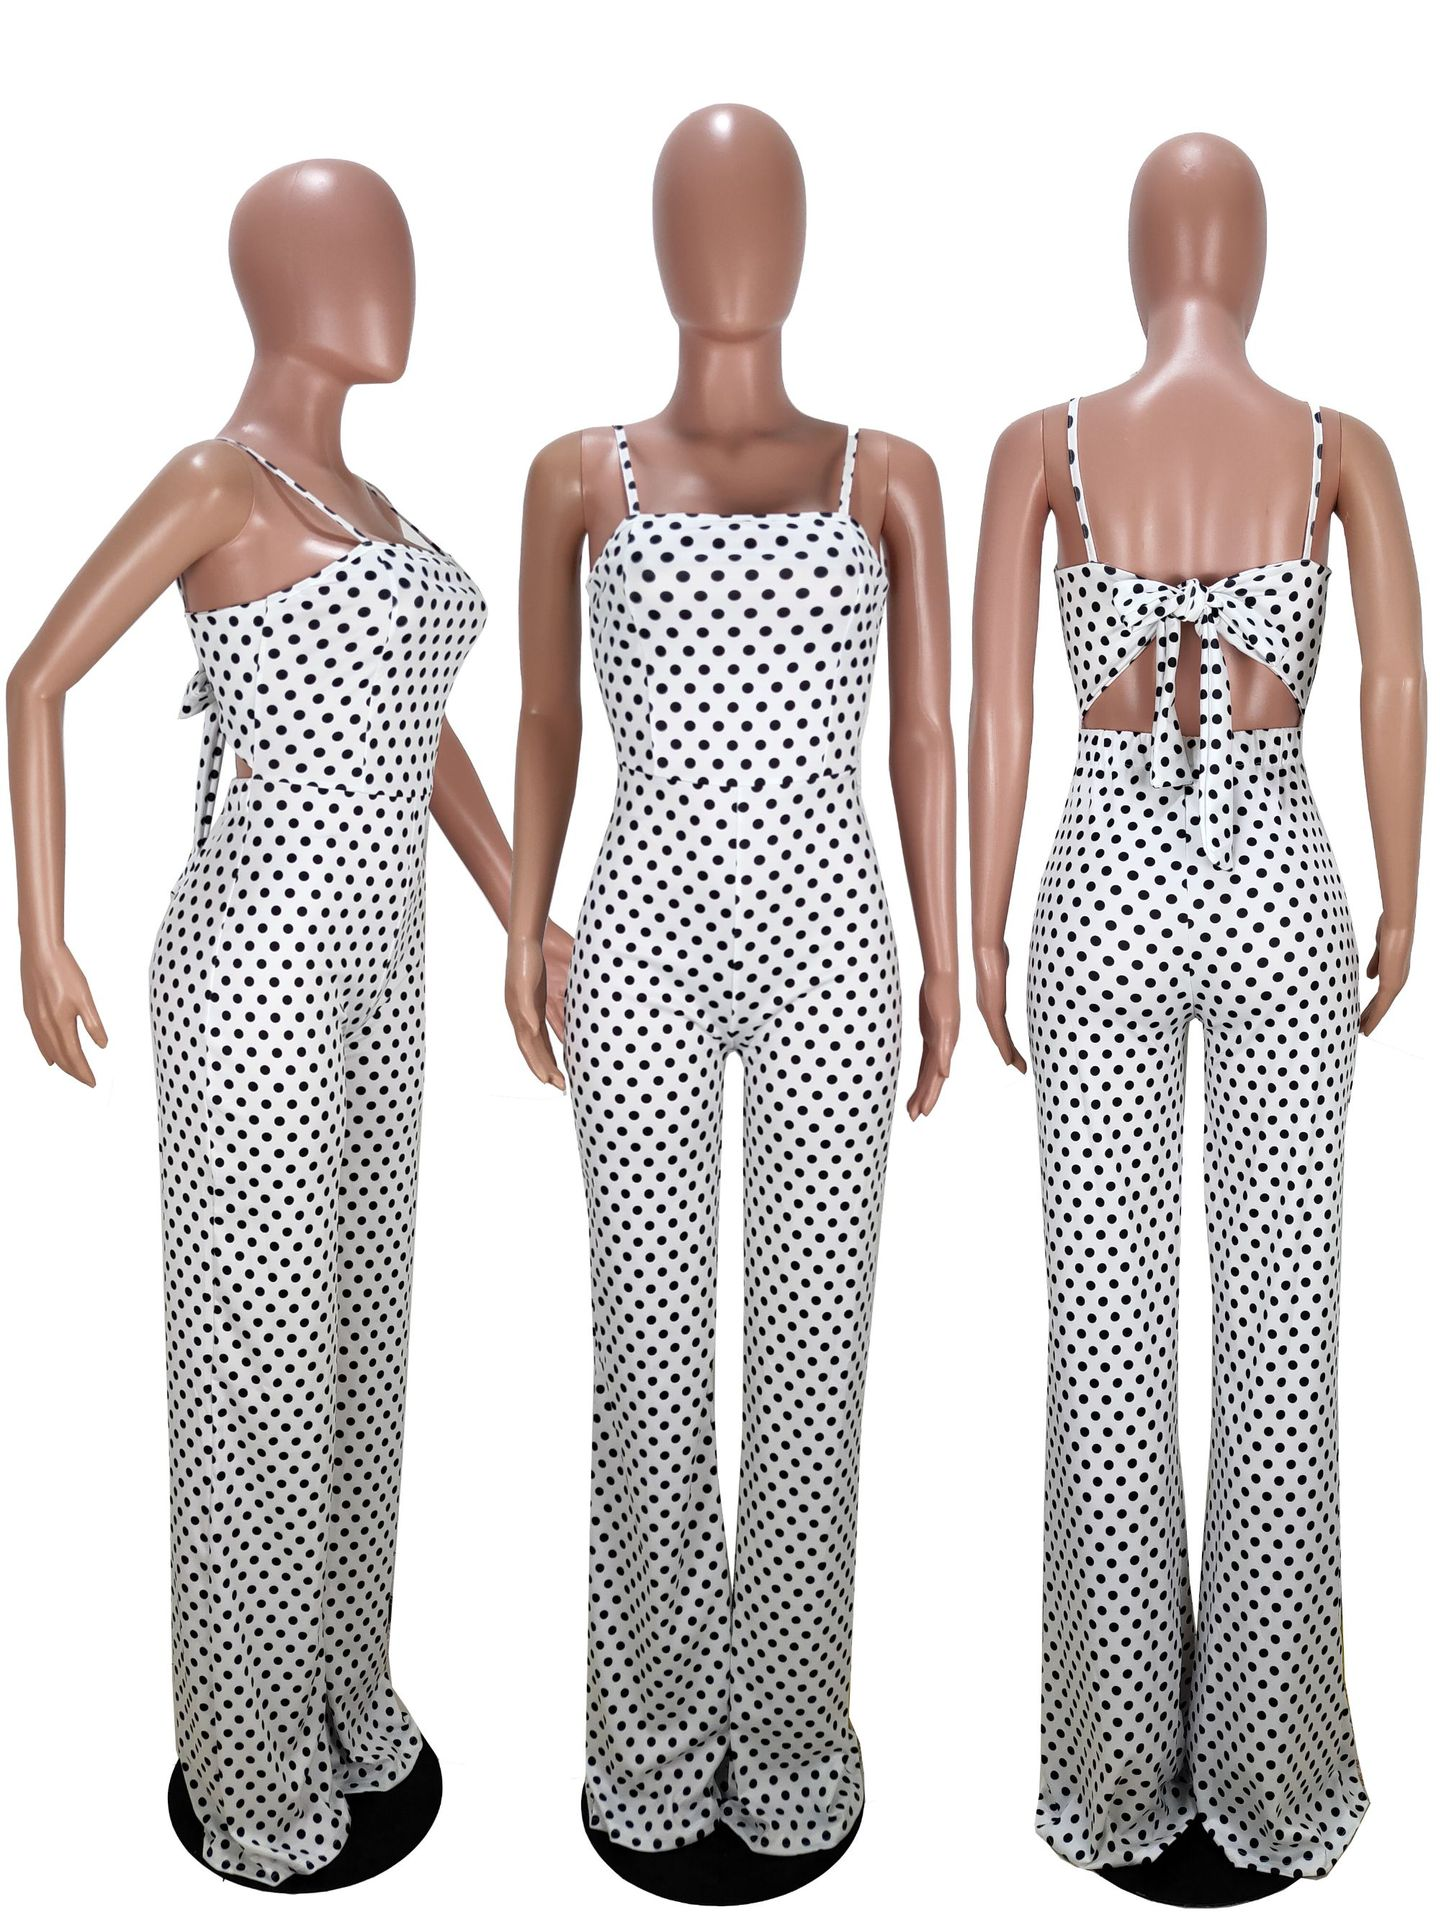 Goocheer New Fashion Women 39 s Strap Sleeveless Jumpsuit Polka Dot Wide Leg Romper Ladies Casual Slim Playsuit Holiday Party Wear in Jumpsuits from Women 39 s Clothing